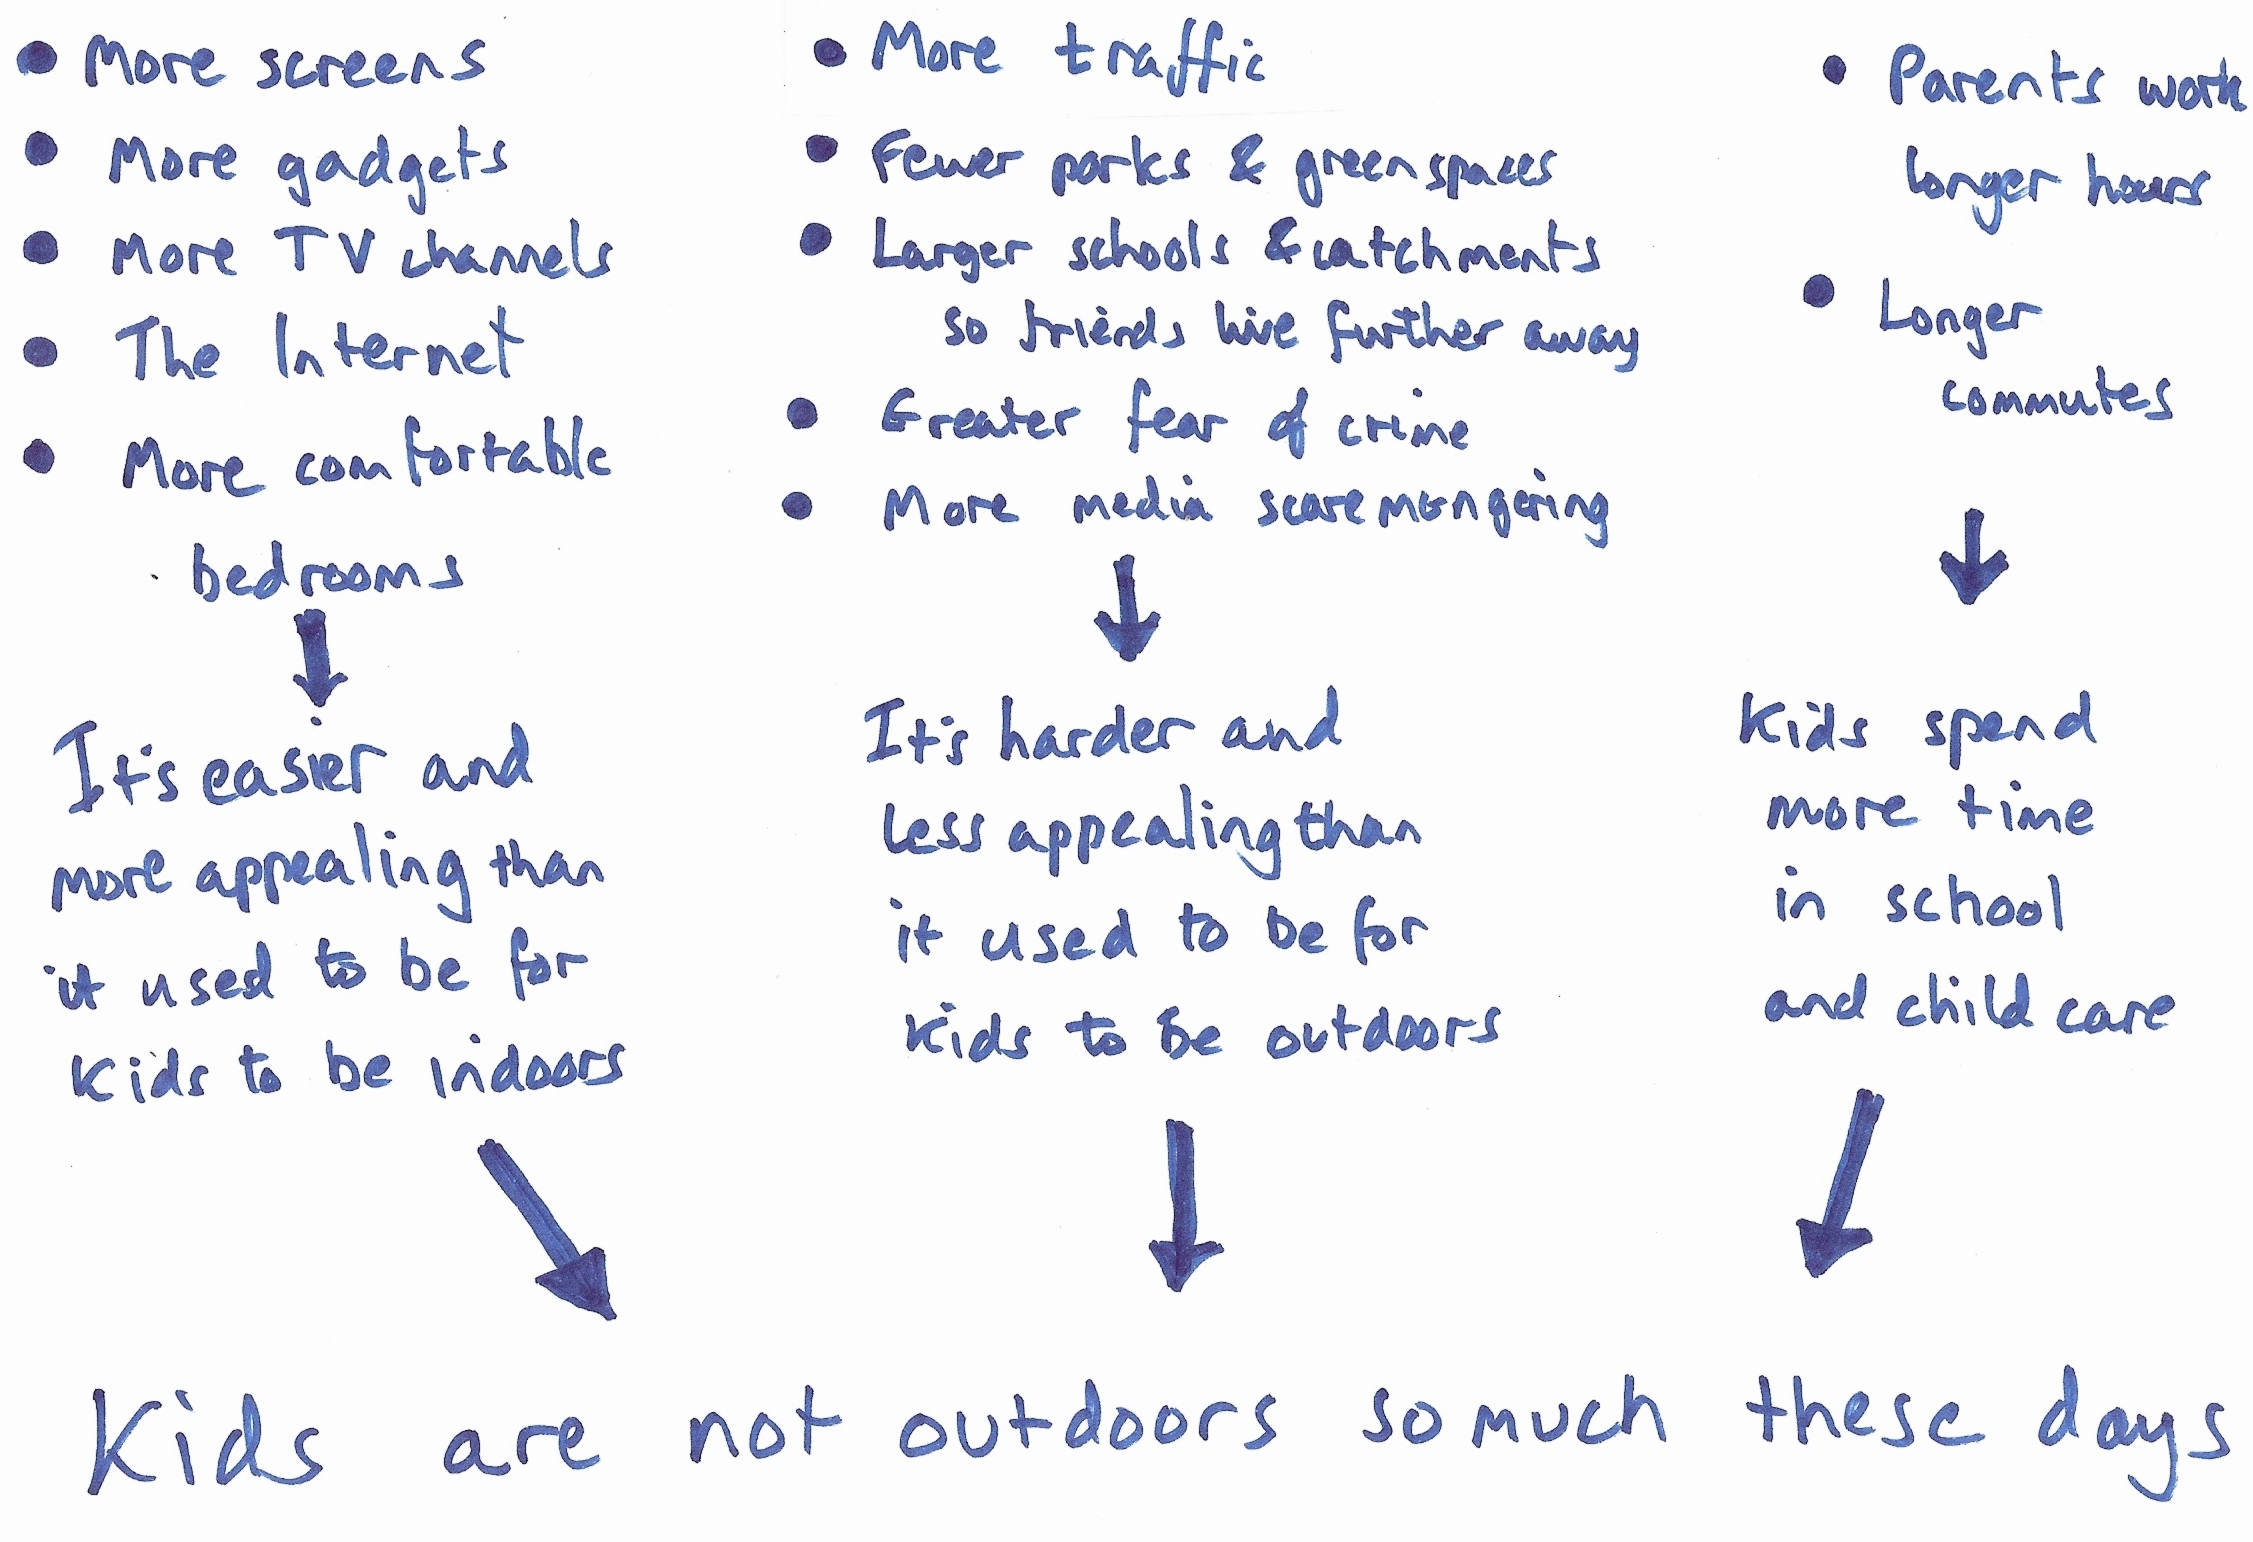 Two stories about why kids are not outdoors so much these days